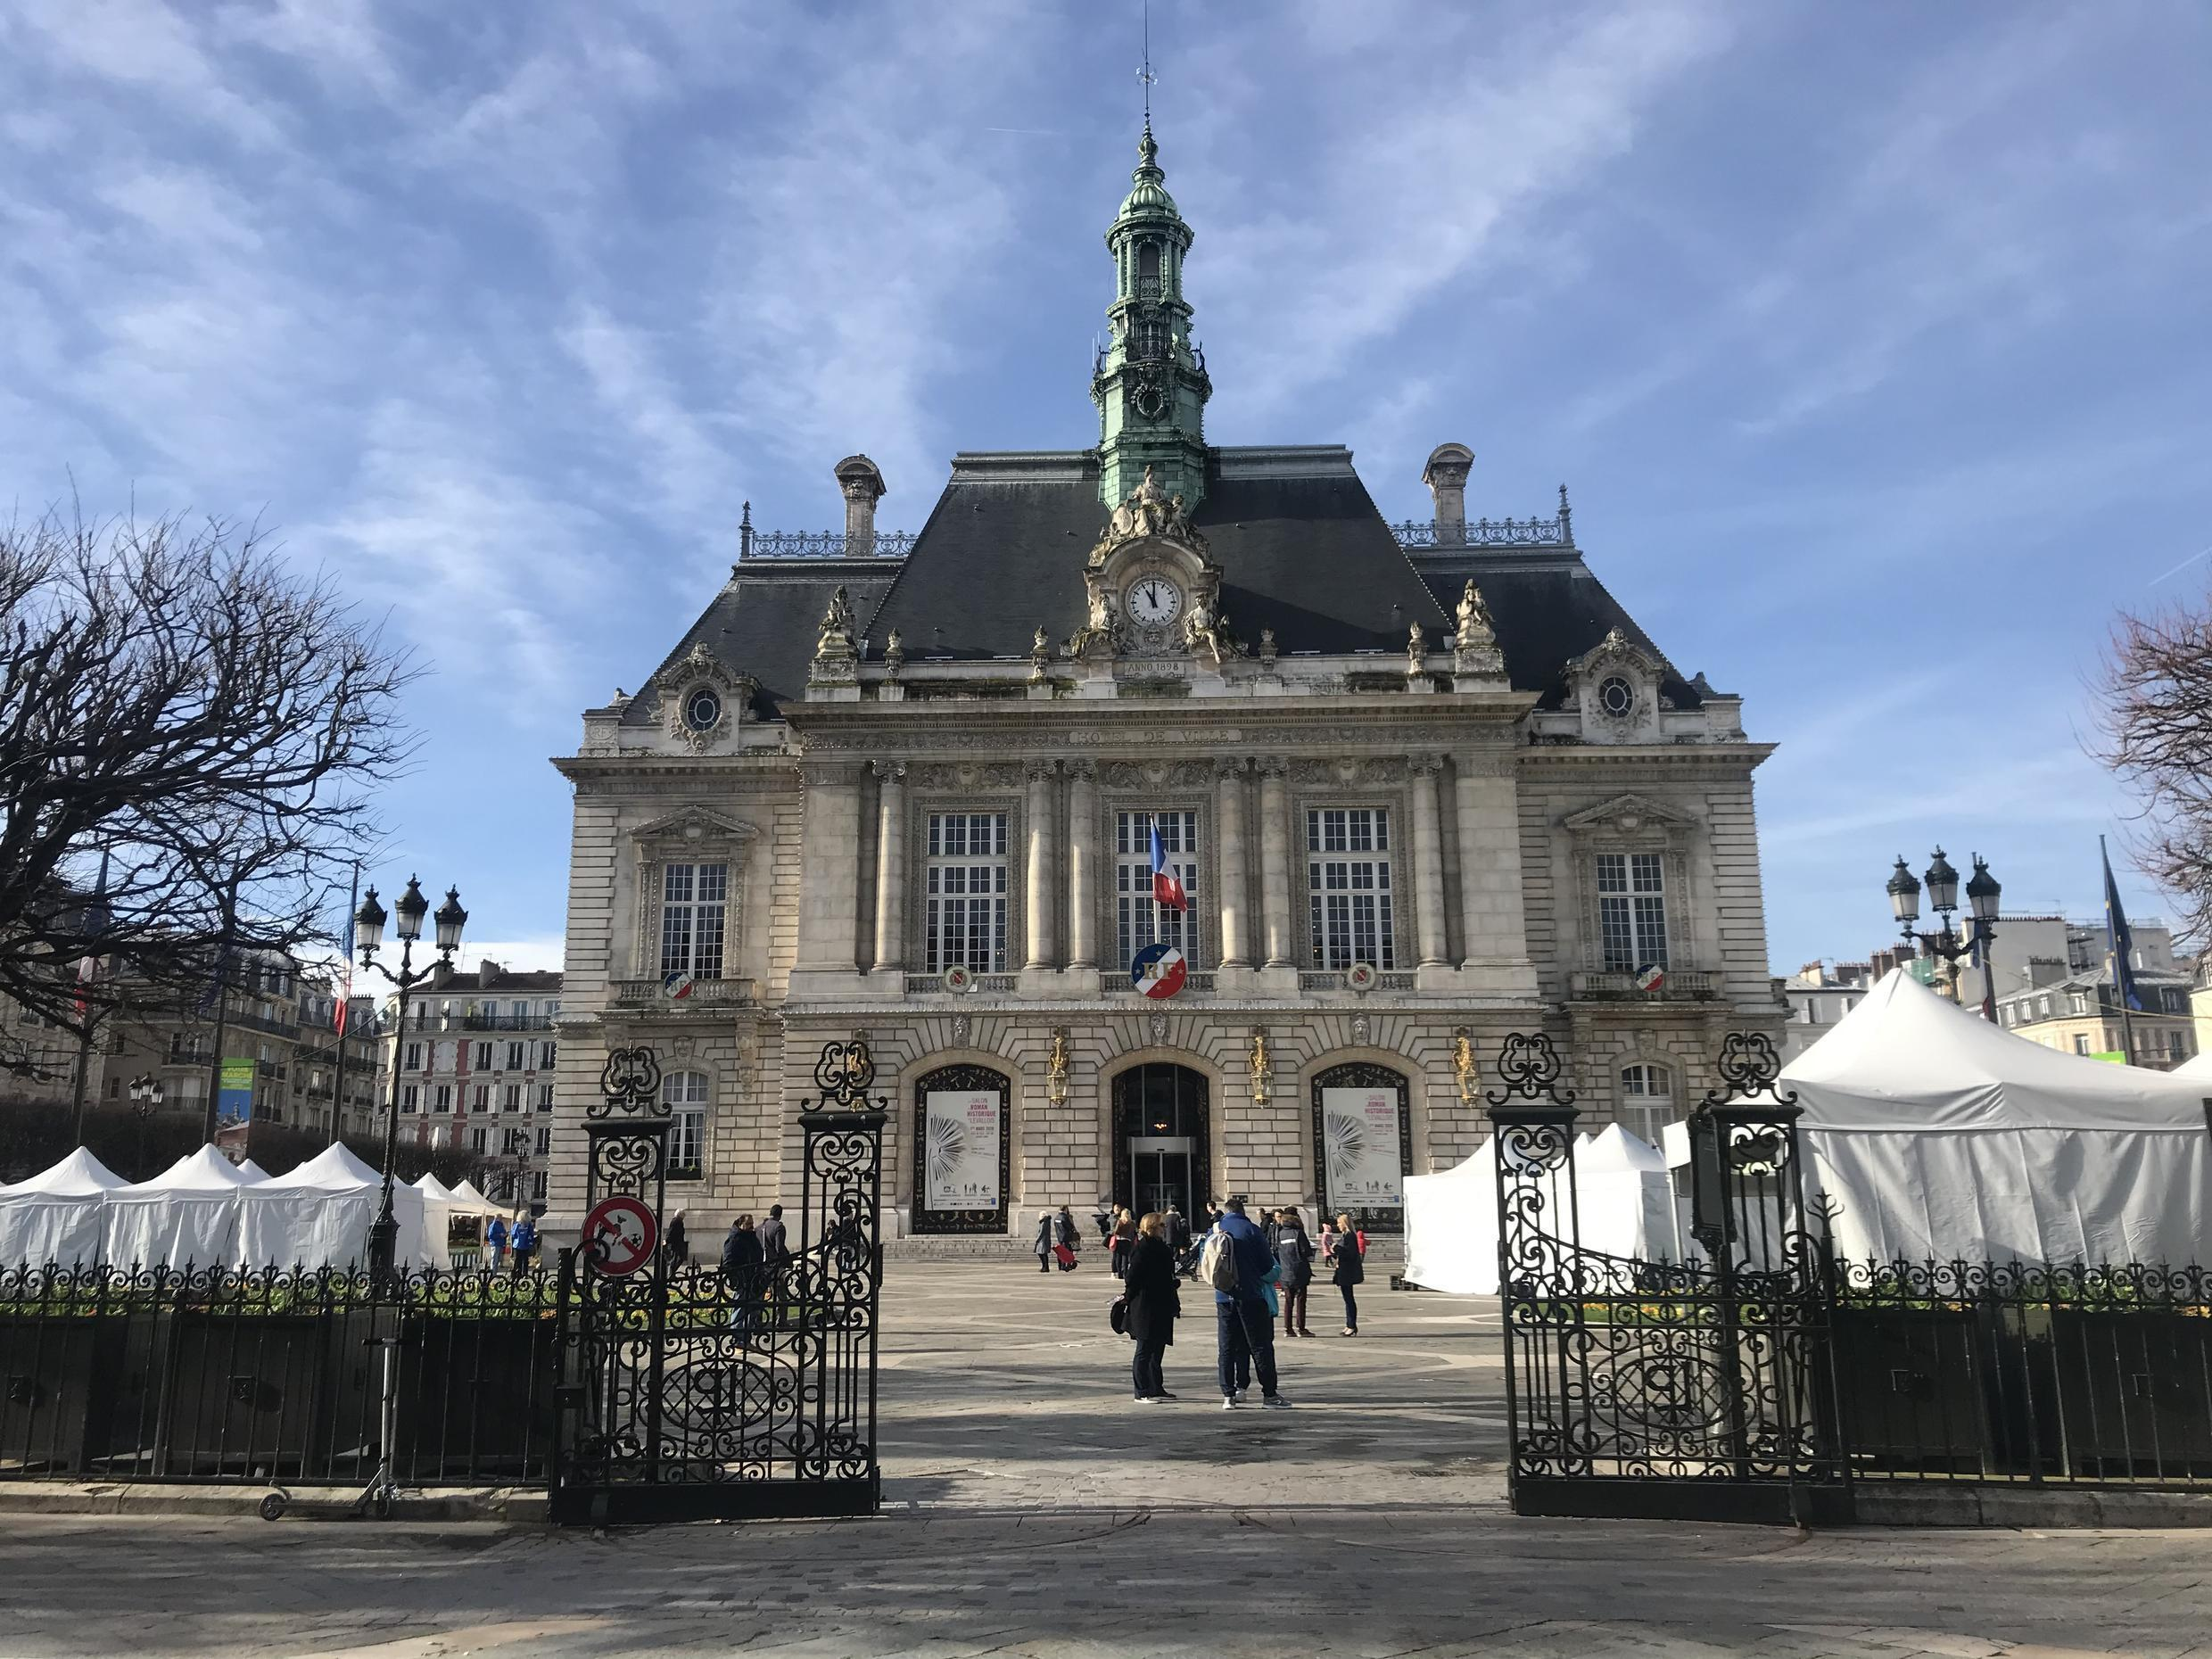 The majestic town hall in Levallois-Perret